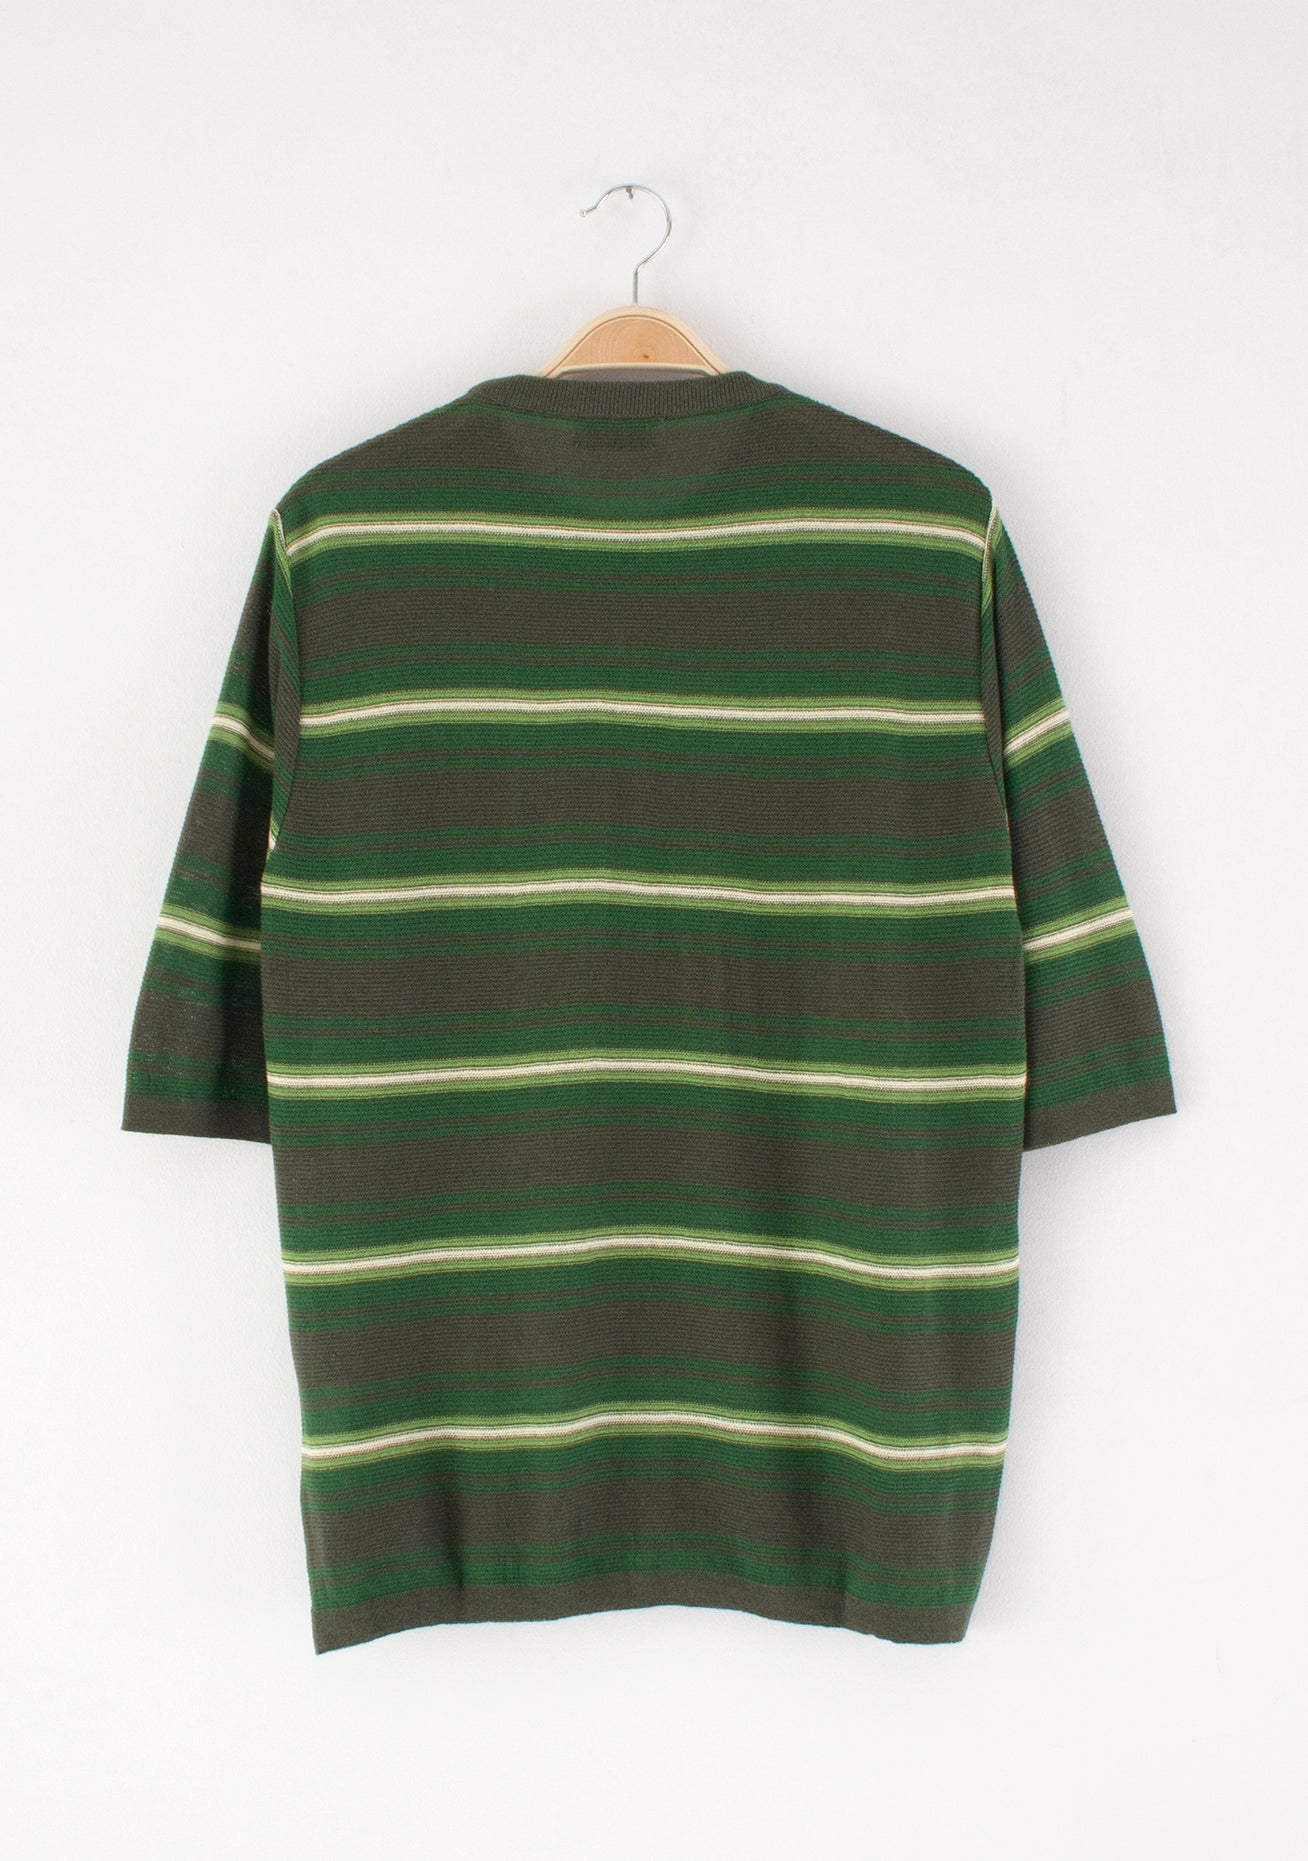 Knit T-shirt, forest-green stripes